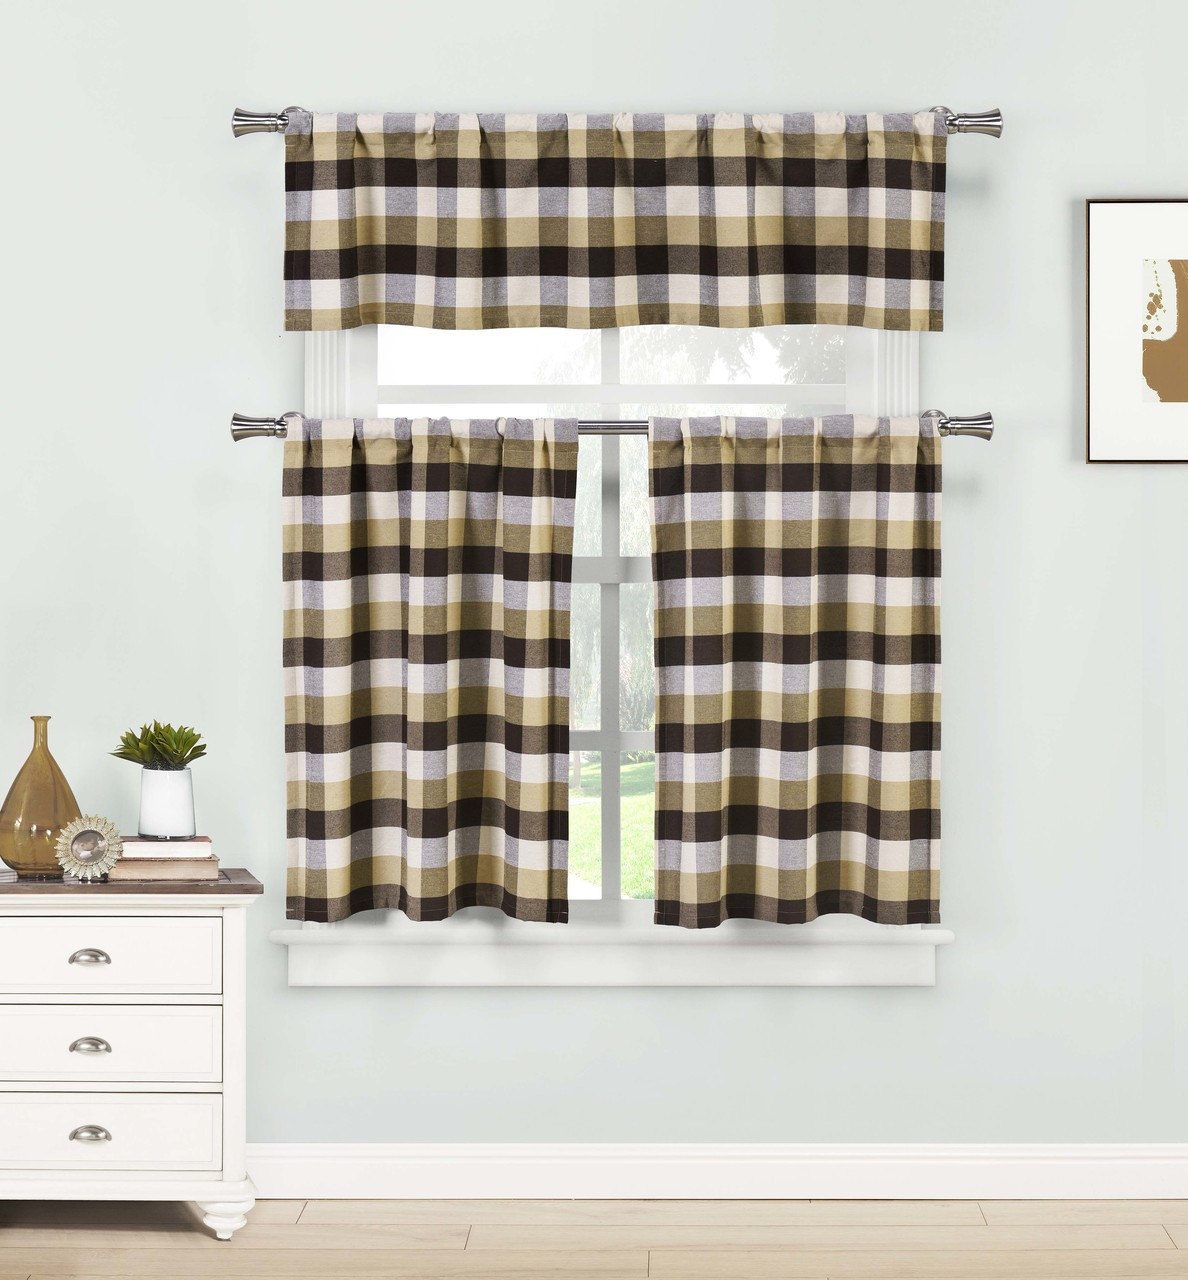 brown three piece kitchen cafe tier window curtain set large gingham check pattern cotton blend fabric